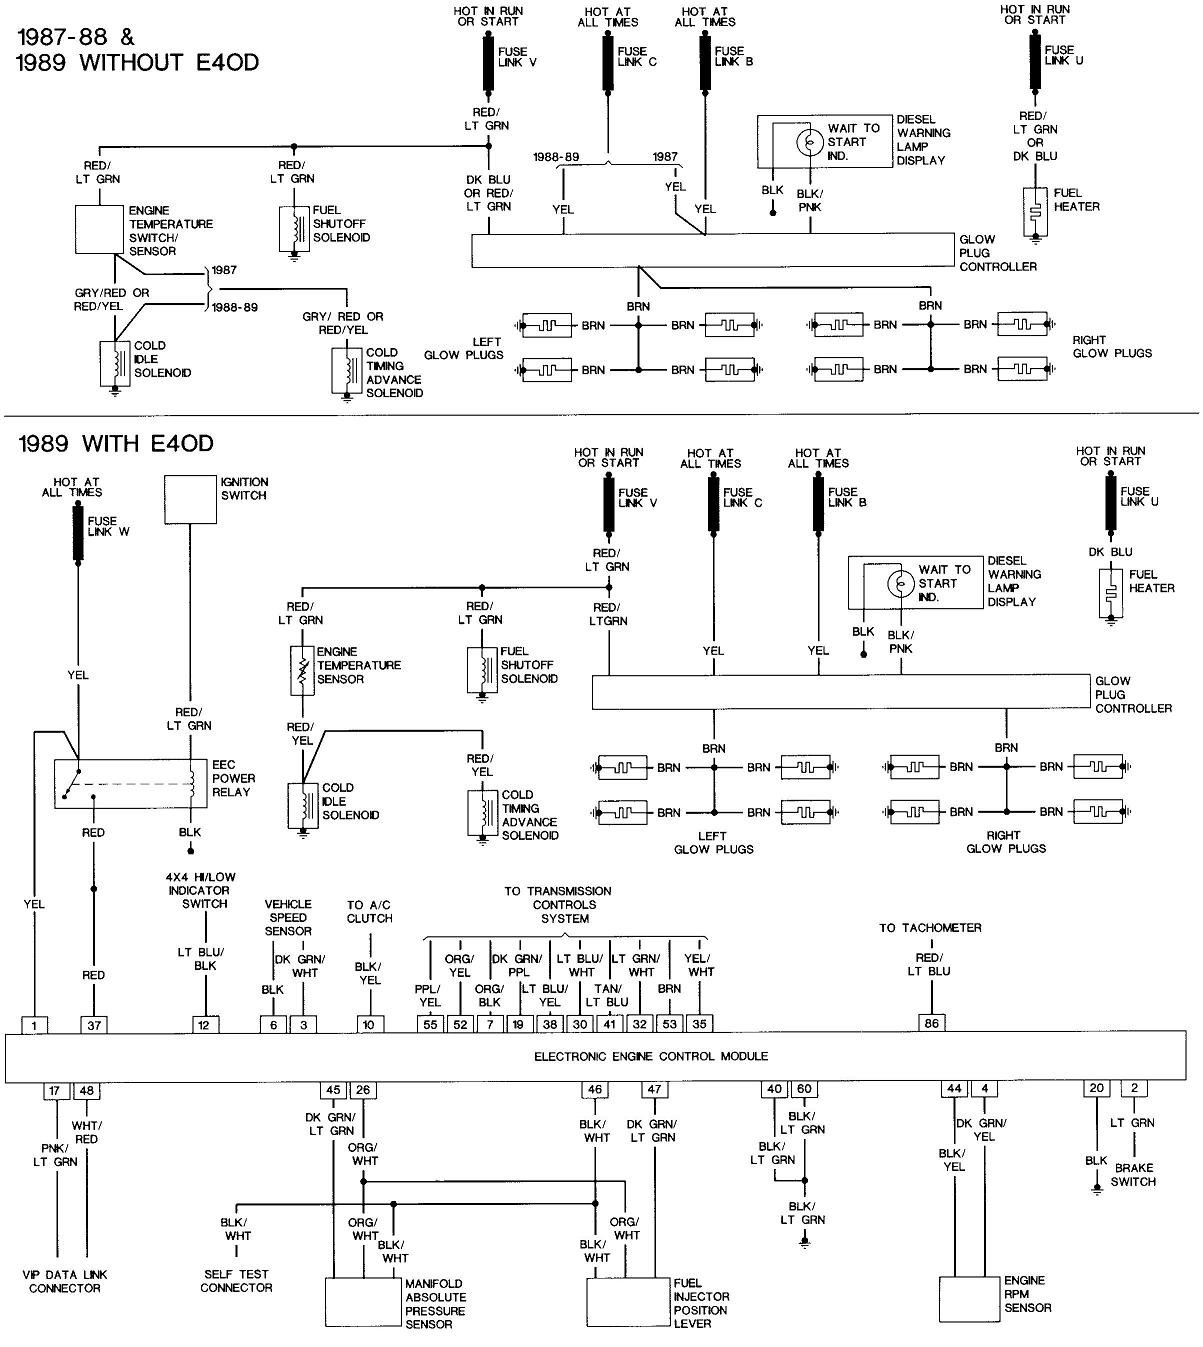 2011 05 08_073846_1 f450 wiring diagram f250 wiring diagram 2016 \u2022 wiring diagrams j  at nearapp.co